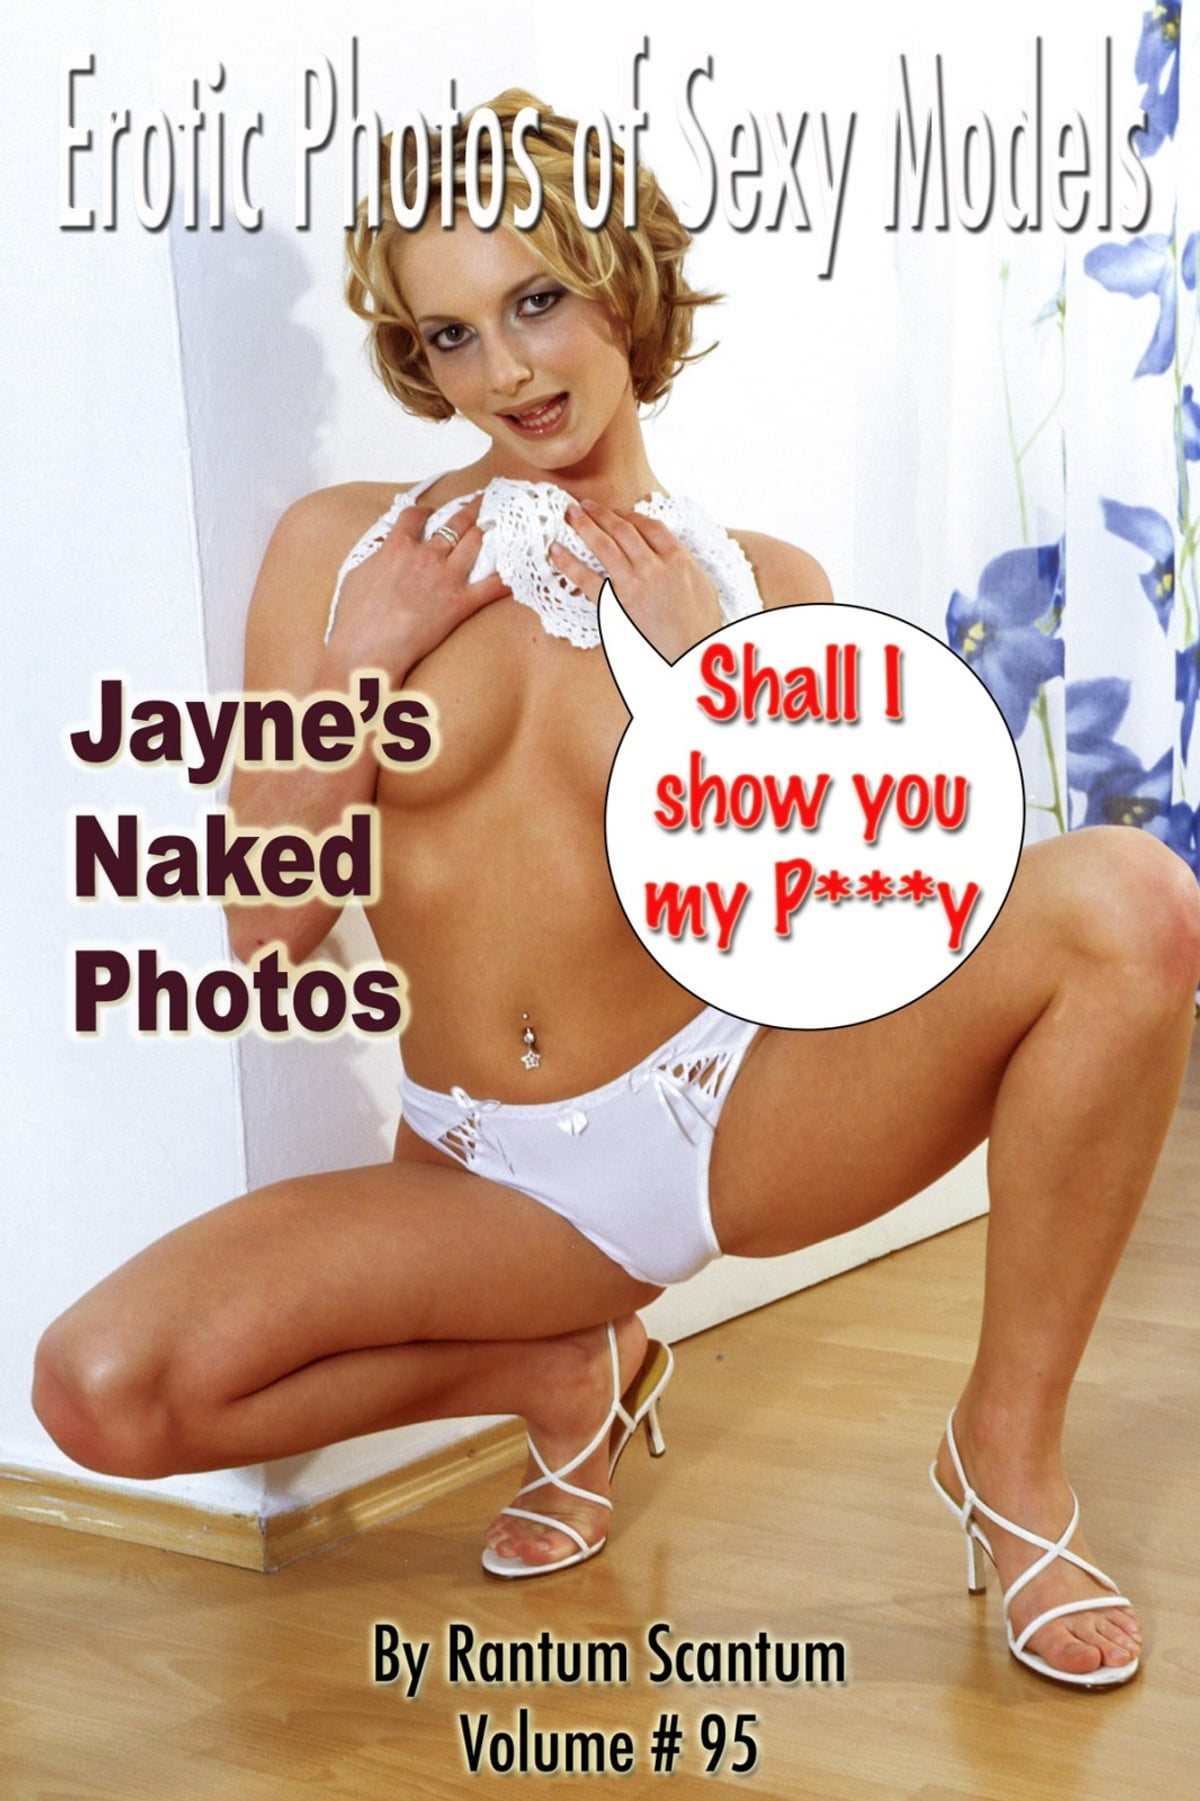 Jayne Naked epsm volume 095, jayne's naked photos ebookrantum scantum - rakuten kobo